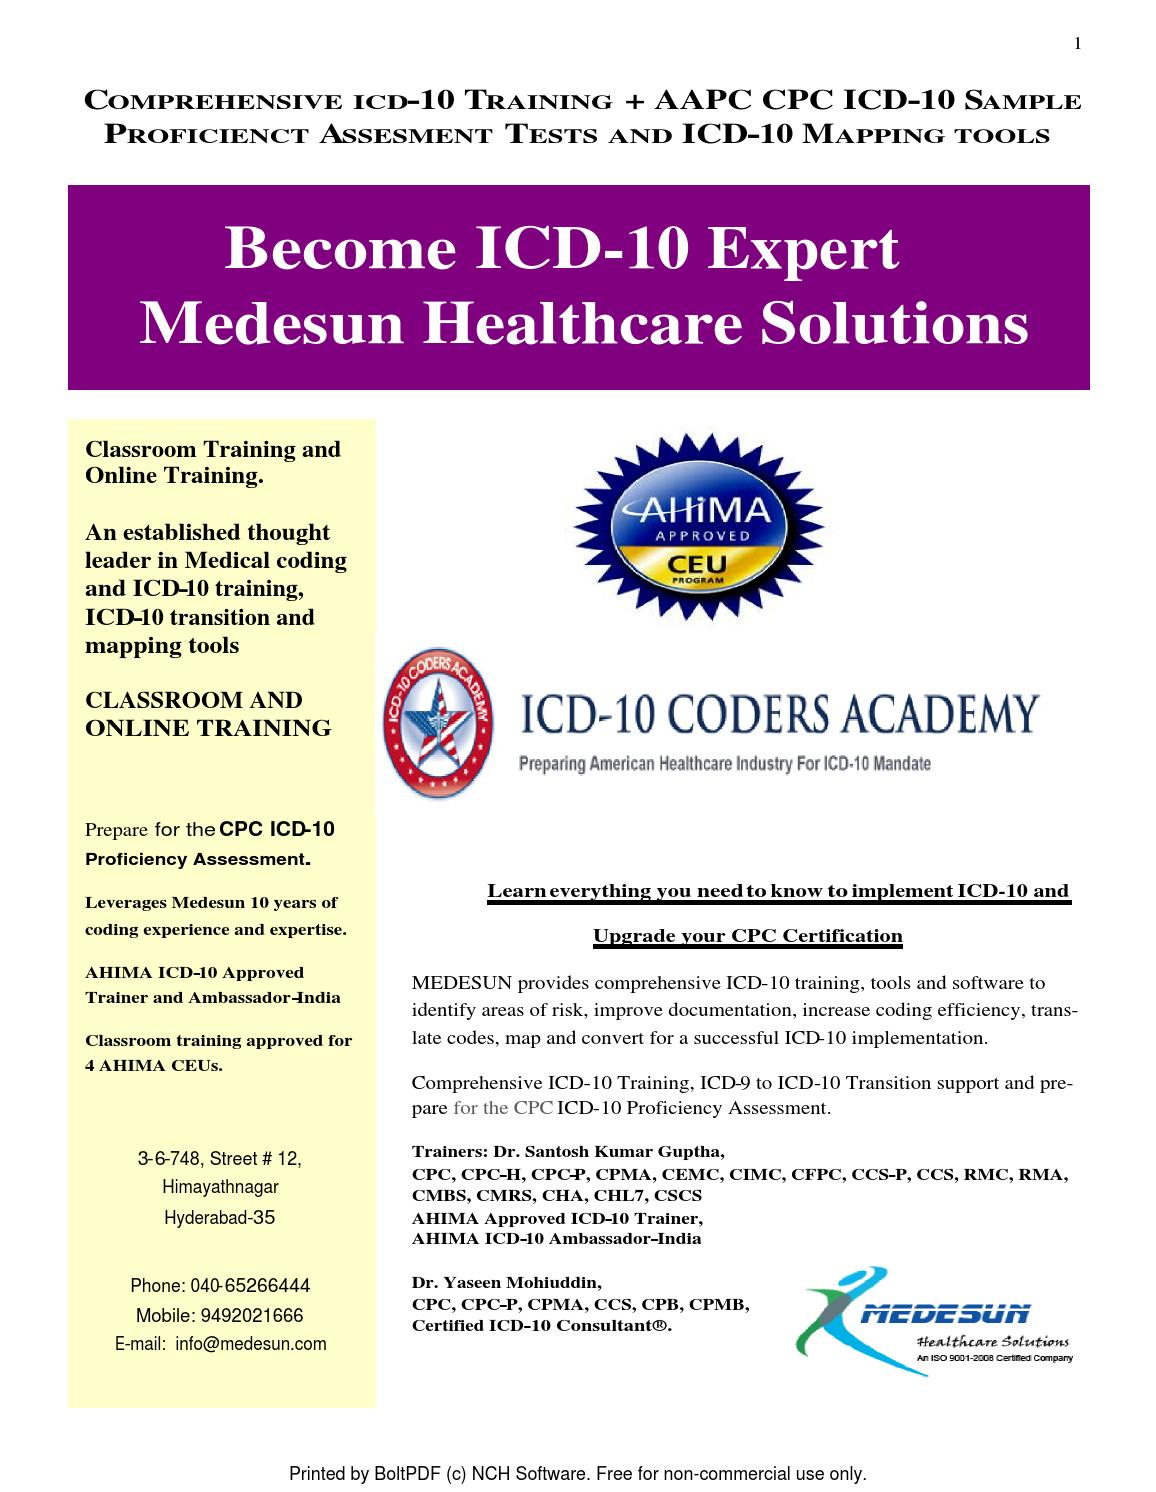 Icd 10 training hyderabad and india by medesun medical coding icd 10 training hyderabad and india by medesun medical coding training center issuu xflitez Choice Image